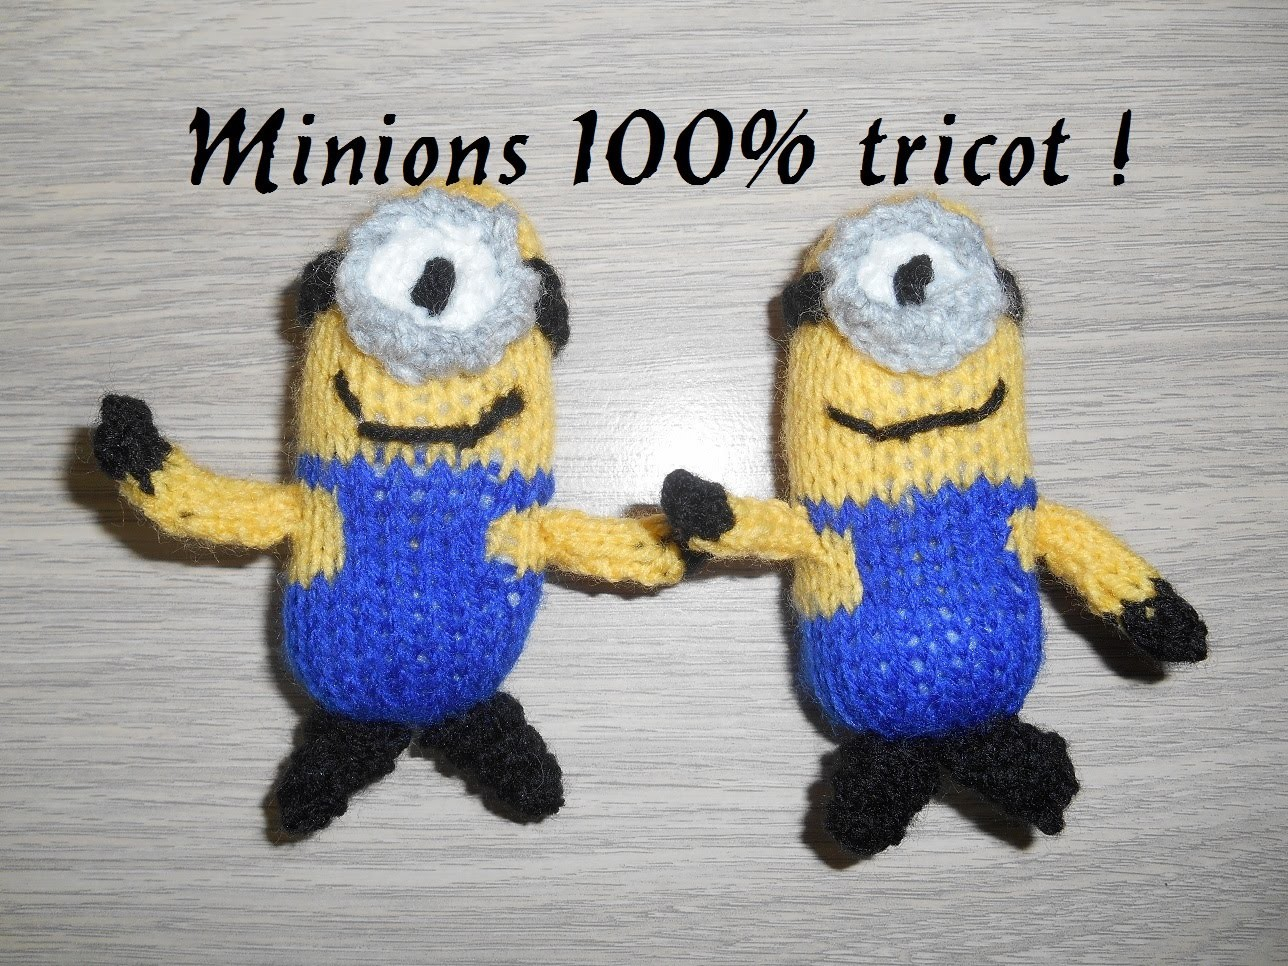 Tricoter des minions facile, knitting minion easy, 100% tricot !